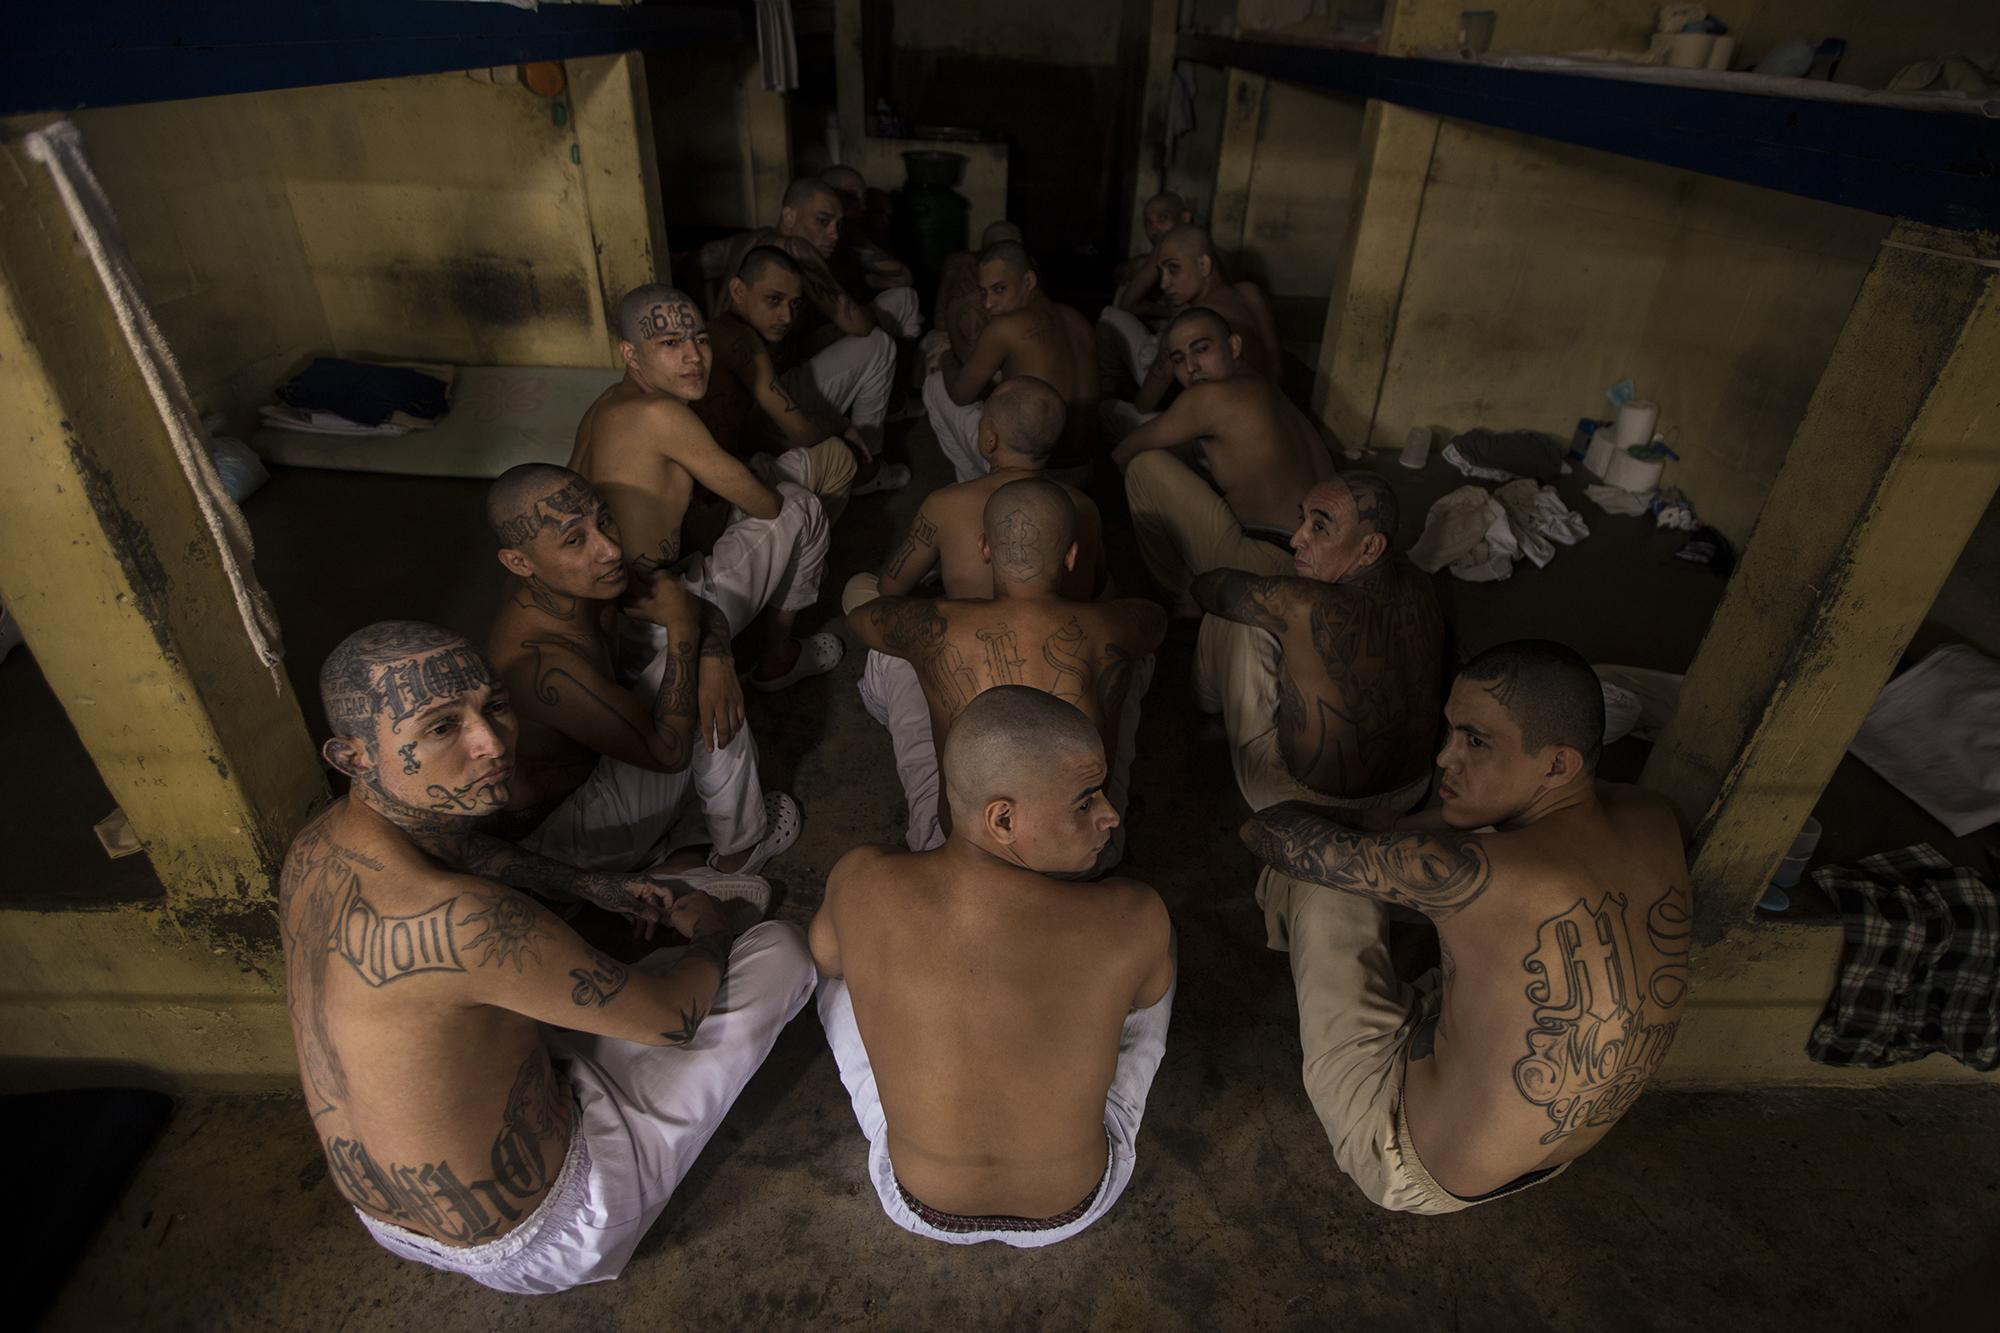 Gang members from Mara Salvatruch 13 and both factions of Barrio 18 were placed together in the same cells. Photo from El Faro: Víctor Peña.